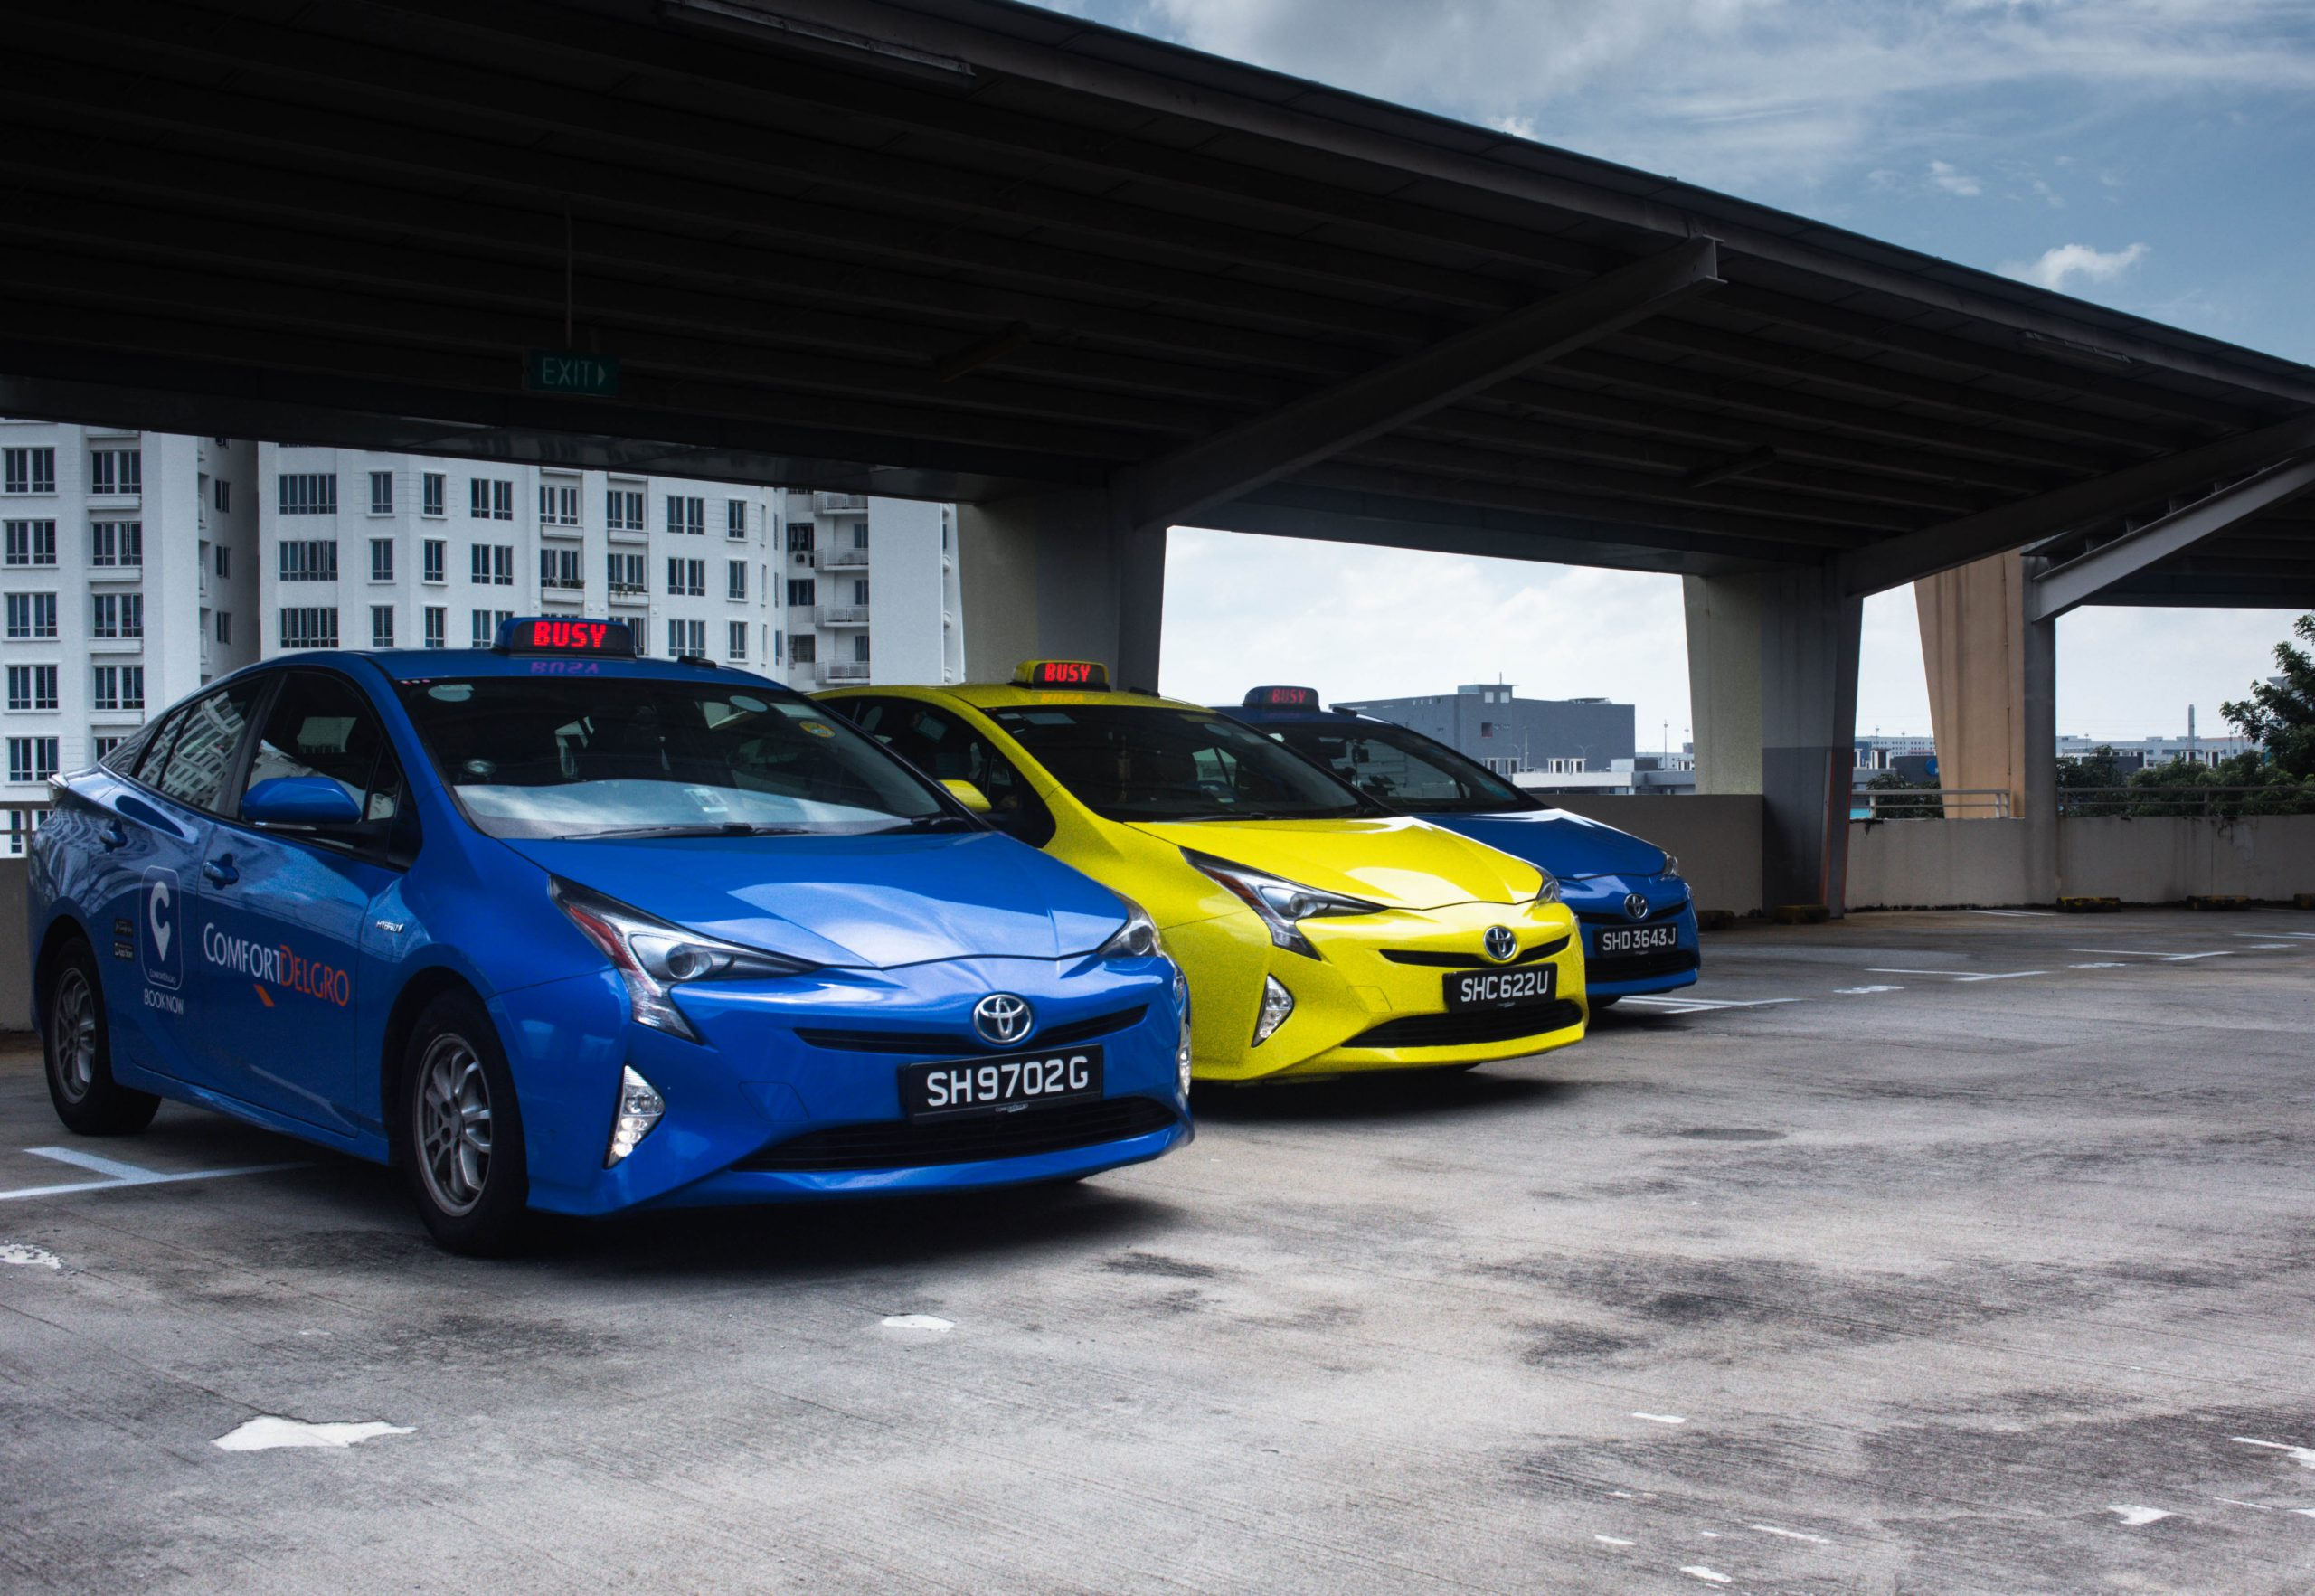 What type of taxi should you go for?